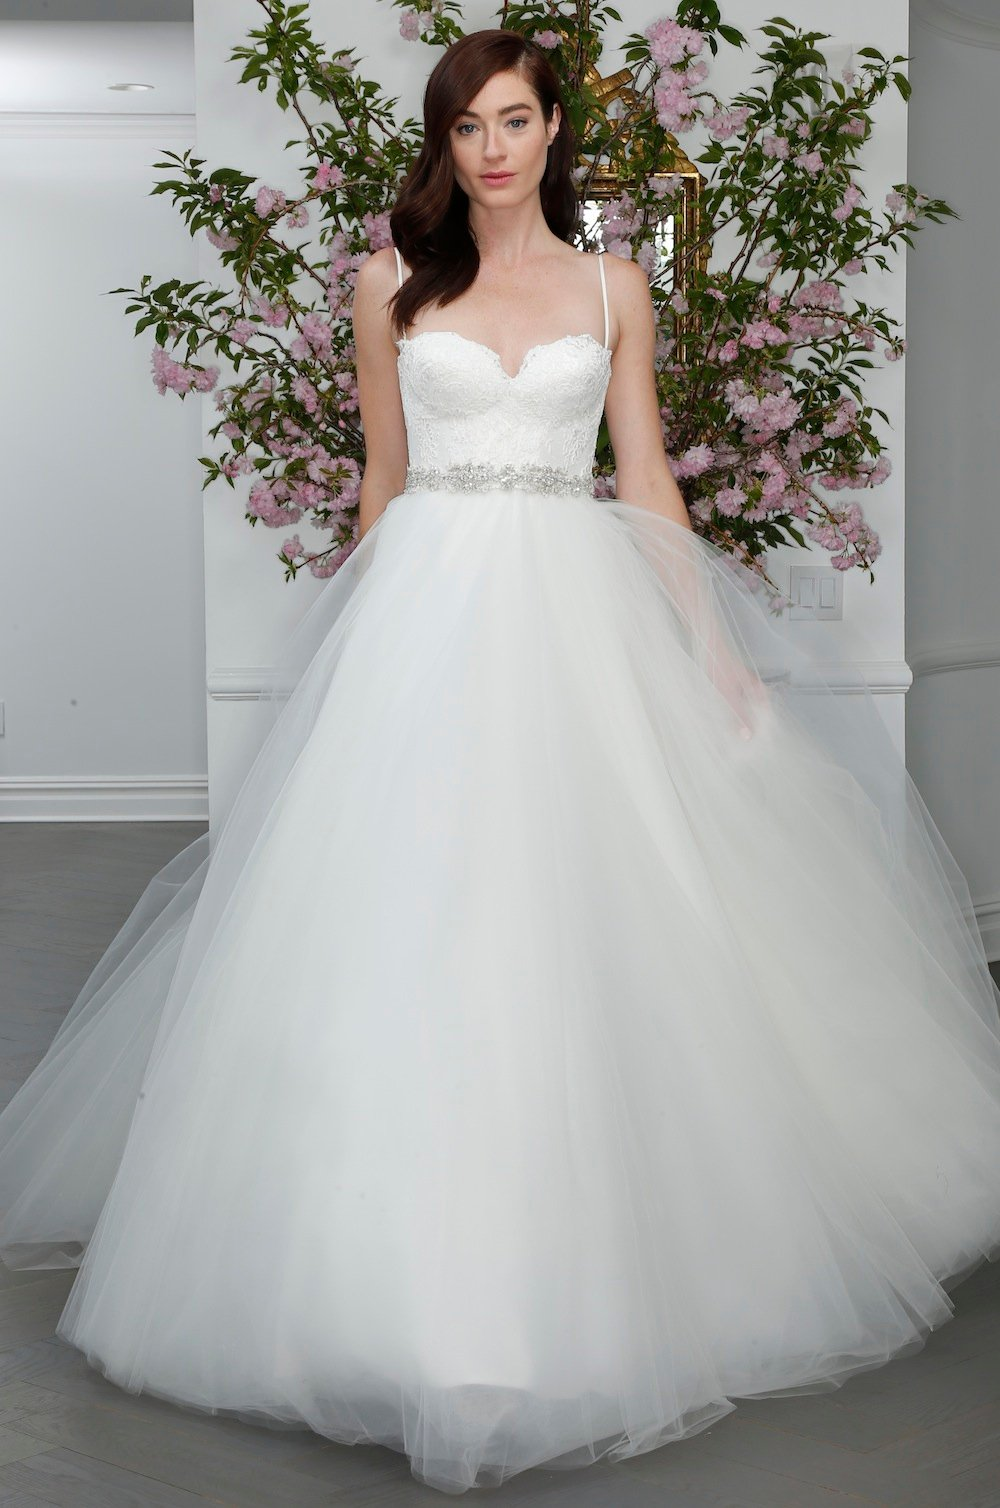 Wedding Gown Trunk Shows 16 Vintage  Trunk Shows in